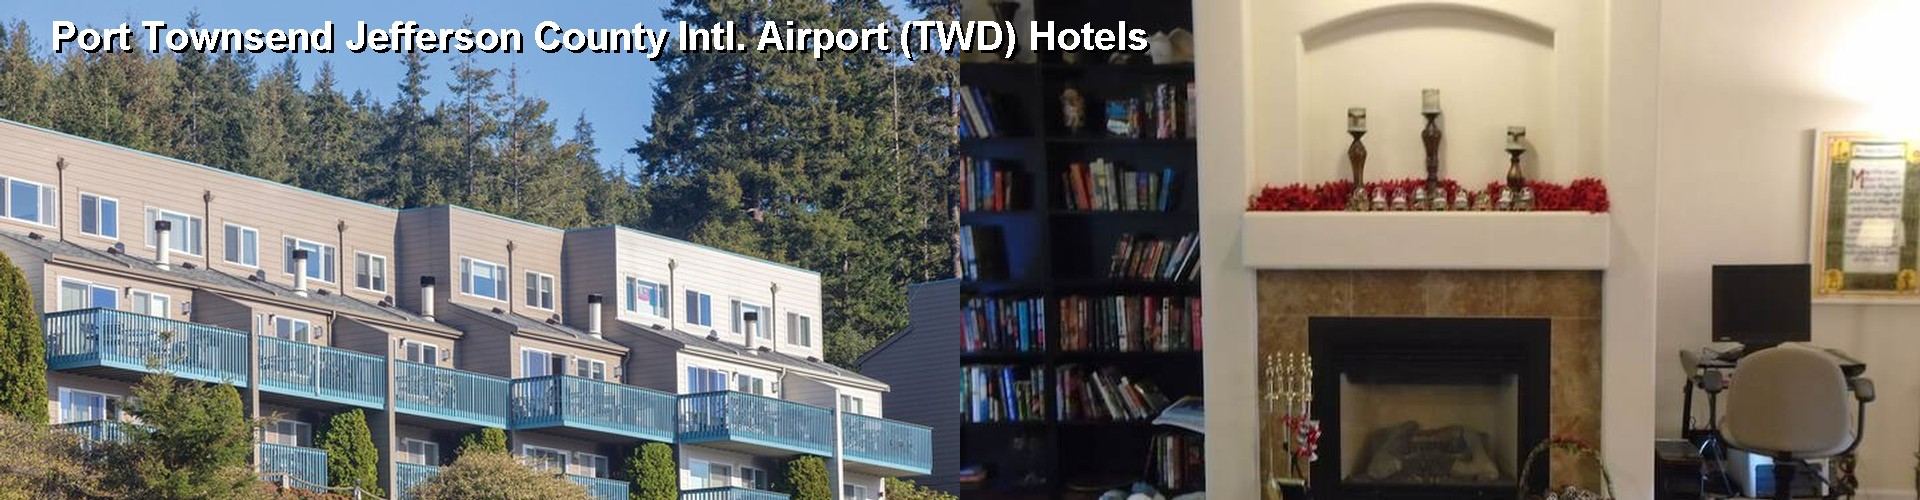 5 Best Hotels near Port Townsend Jefferson County Intl. Airport (TWD)